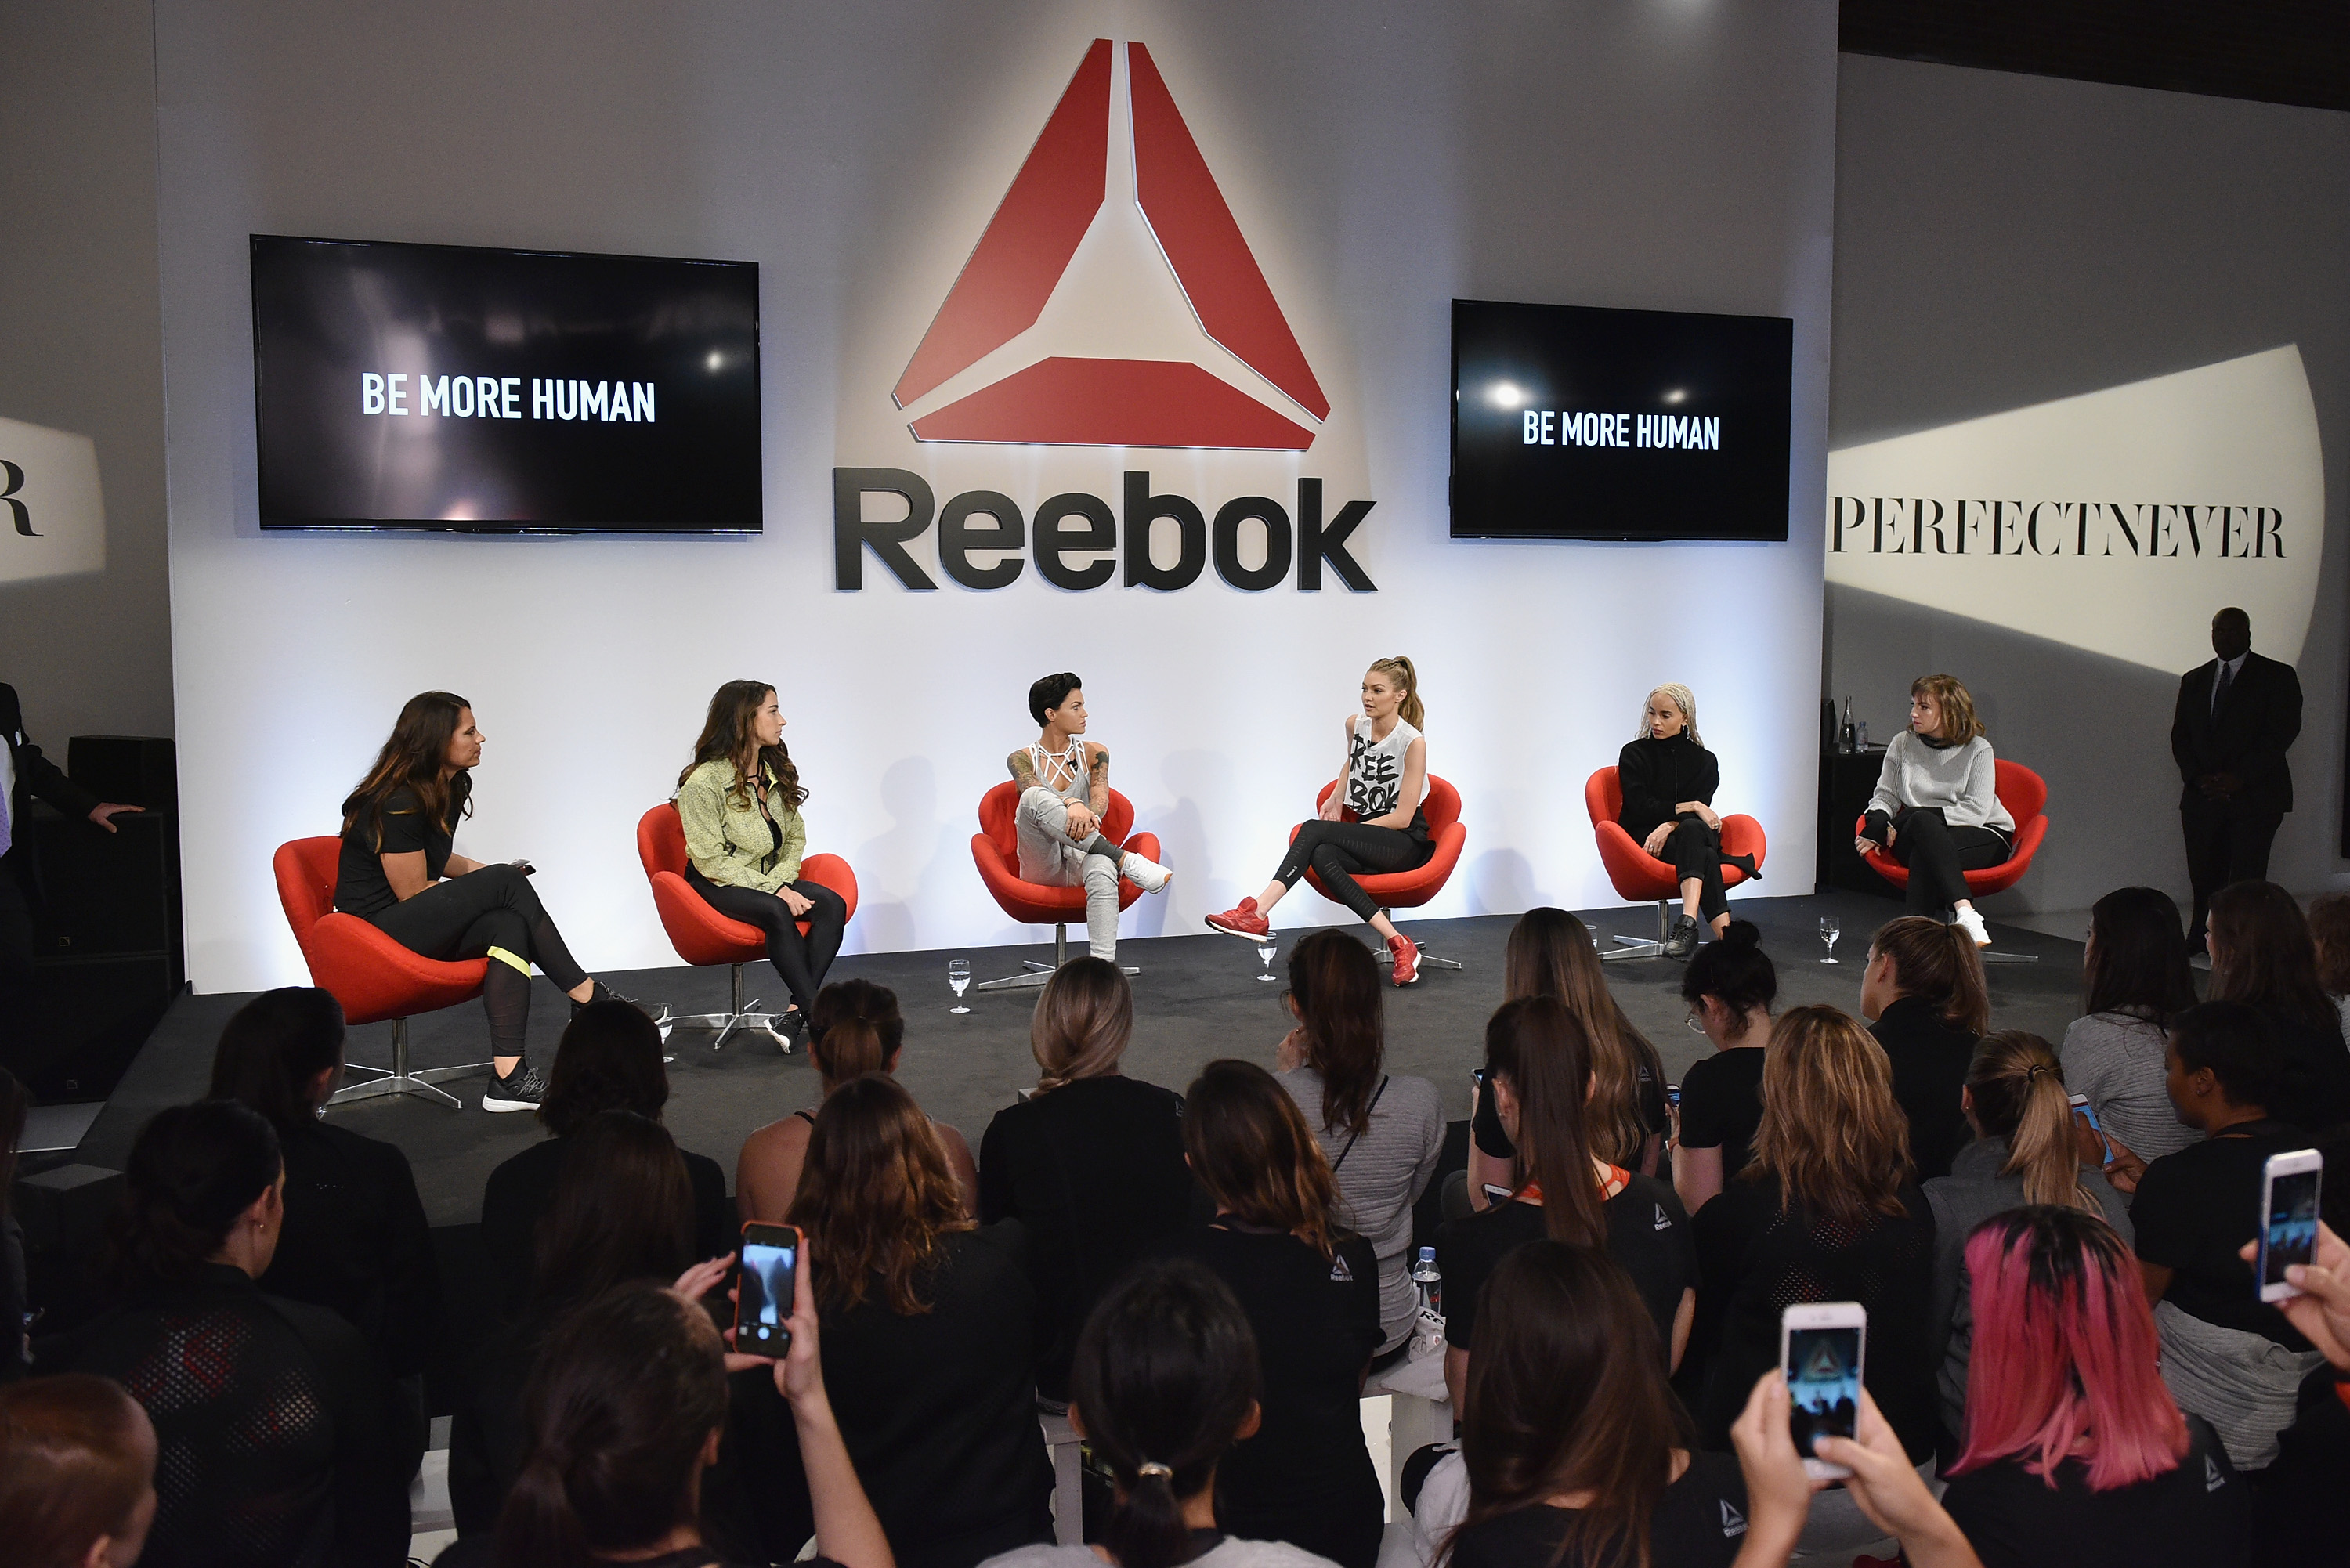 NEW YORK, NY - DECEMBER 07: Jessica Mendoza, Aly Raisman, Ruby Rose, Gigi Hadid, Zoe Kravitz and Lena Dunham speak onstage at Reebok And Gigi Hadid Present #PerfectNever Revolution on December 7, 2016 at Skylight at Clarkson Square in New York City. (Photo by Bryan Bedder/Getty Images for Reebok) *** Local Caption *** Jessica Mendoza;Aly Raisman;Ruby Rose;Gigi Hadid;Zoe Kravitz;Lena Dunham